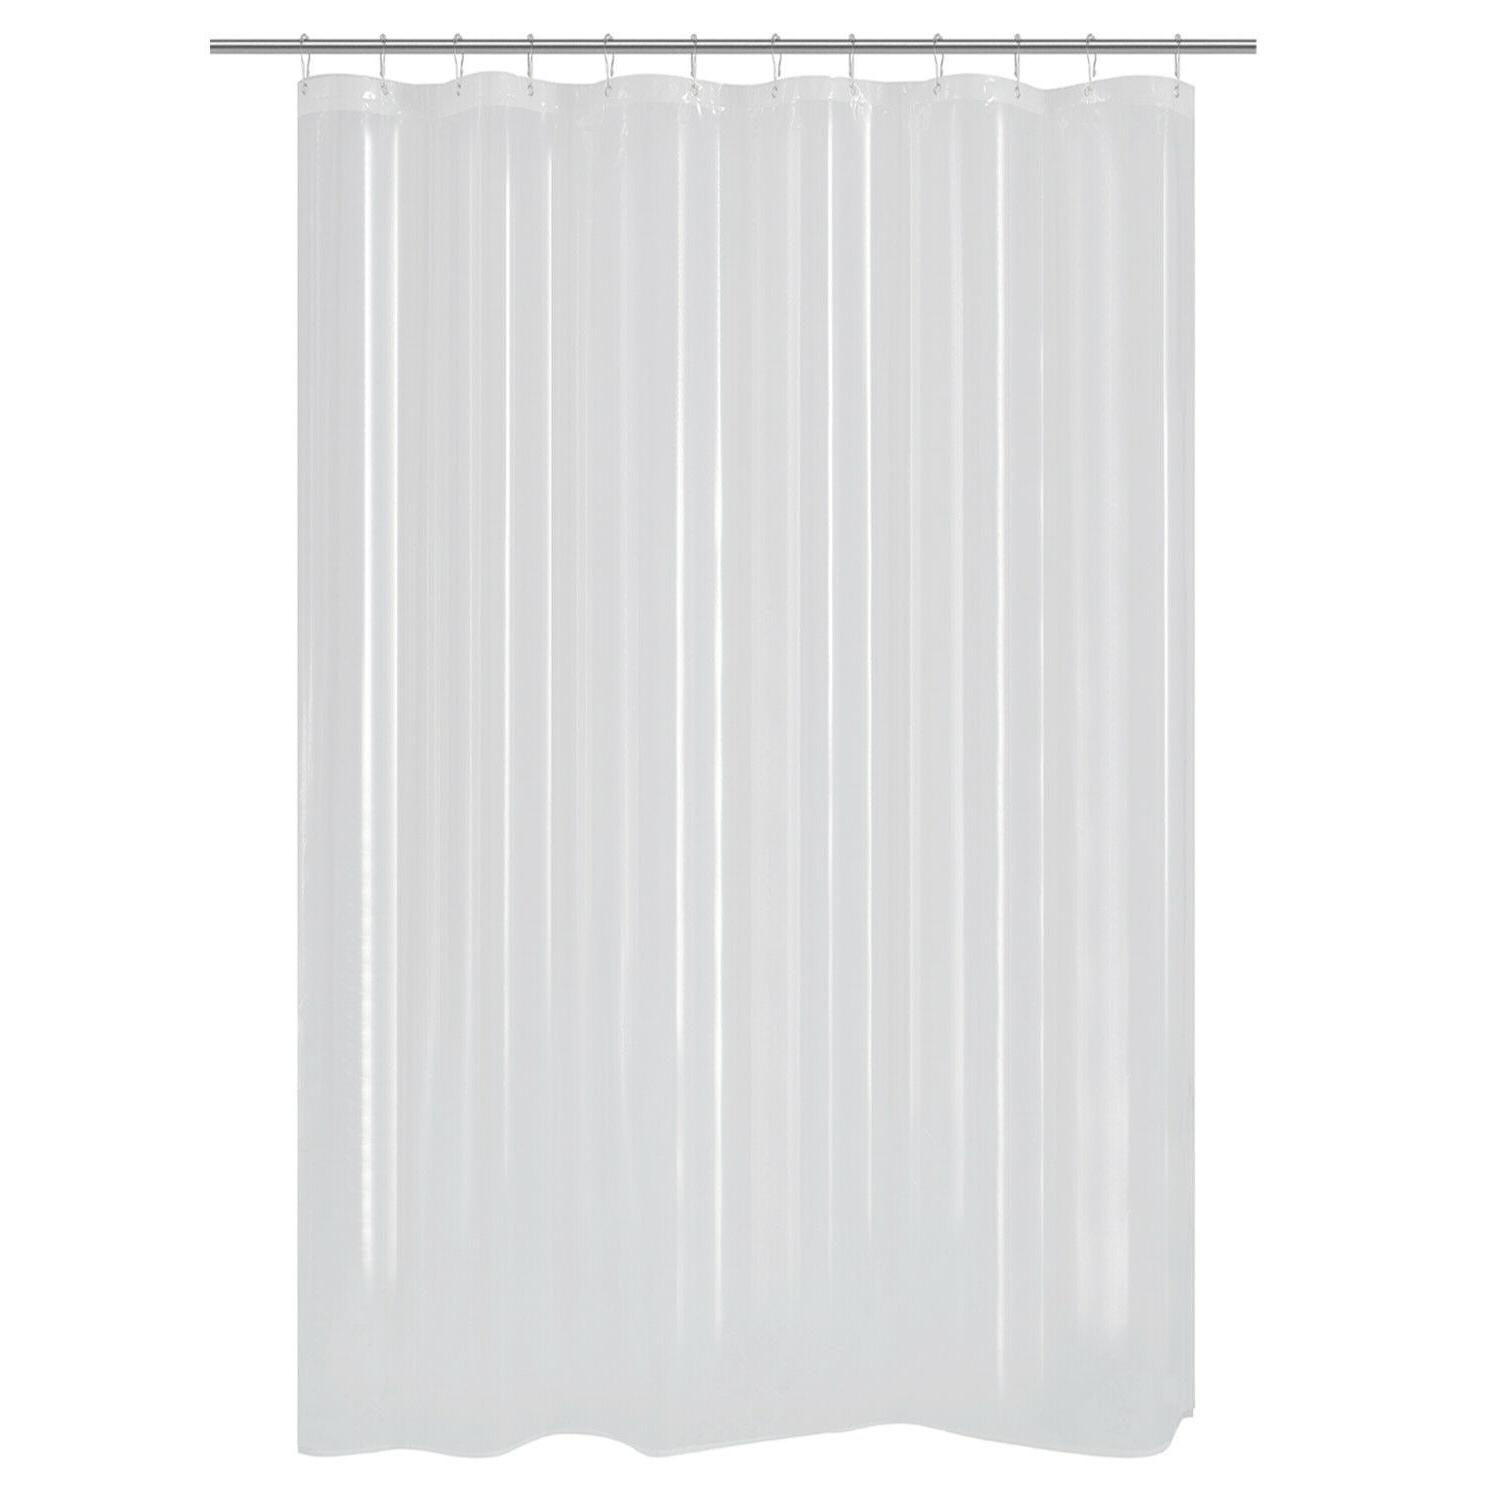 extra long shower curtain or liner peva